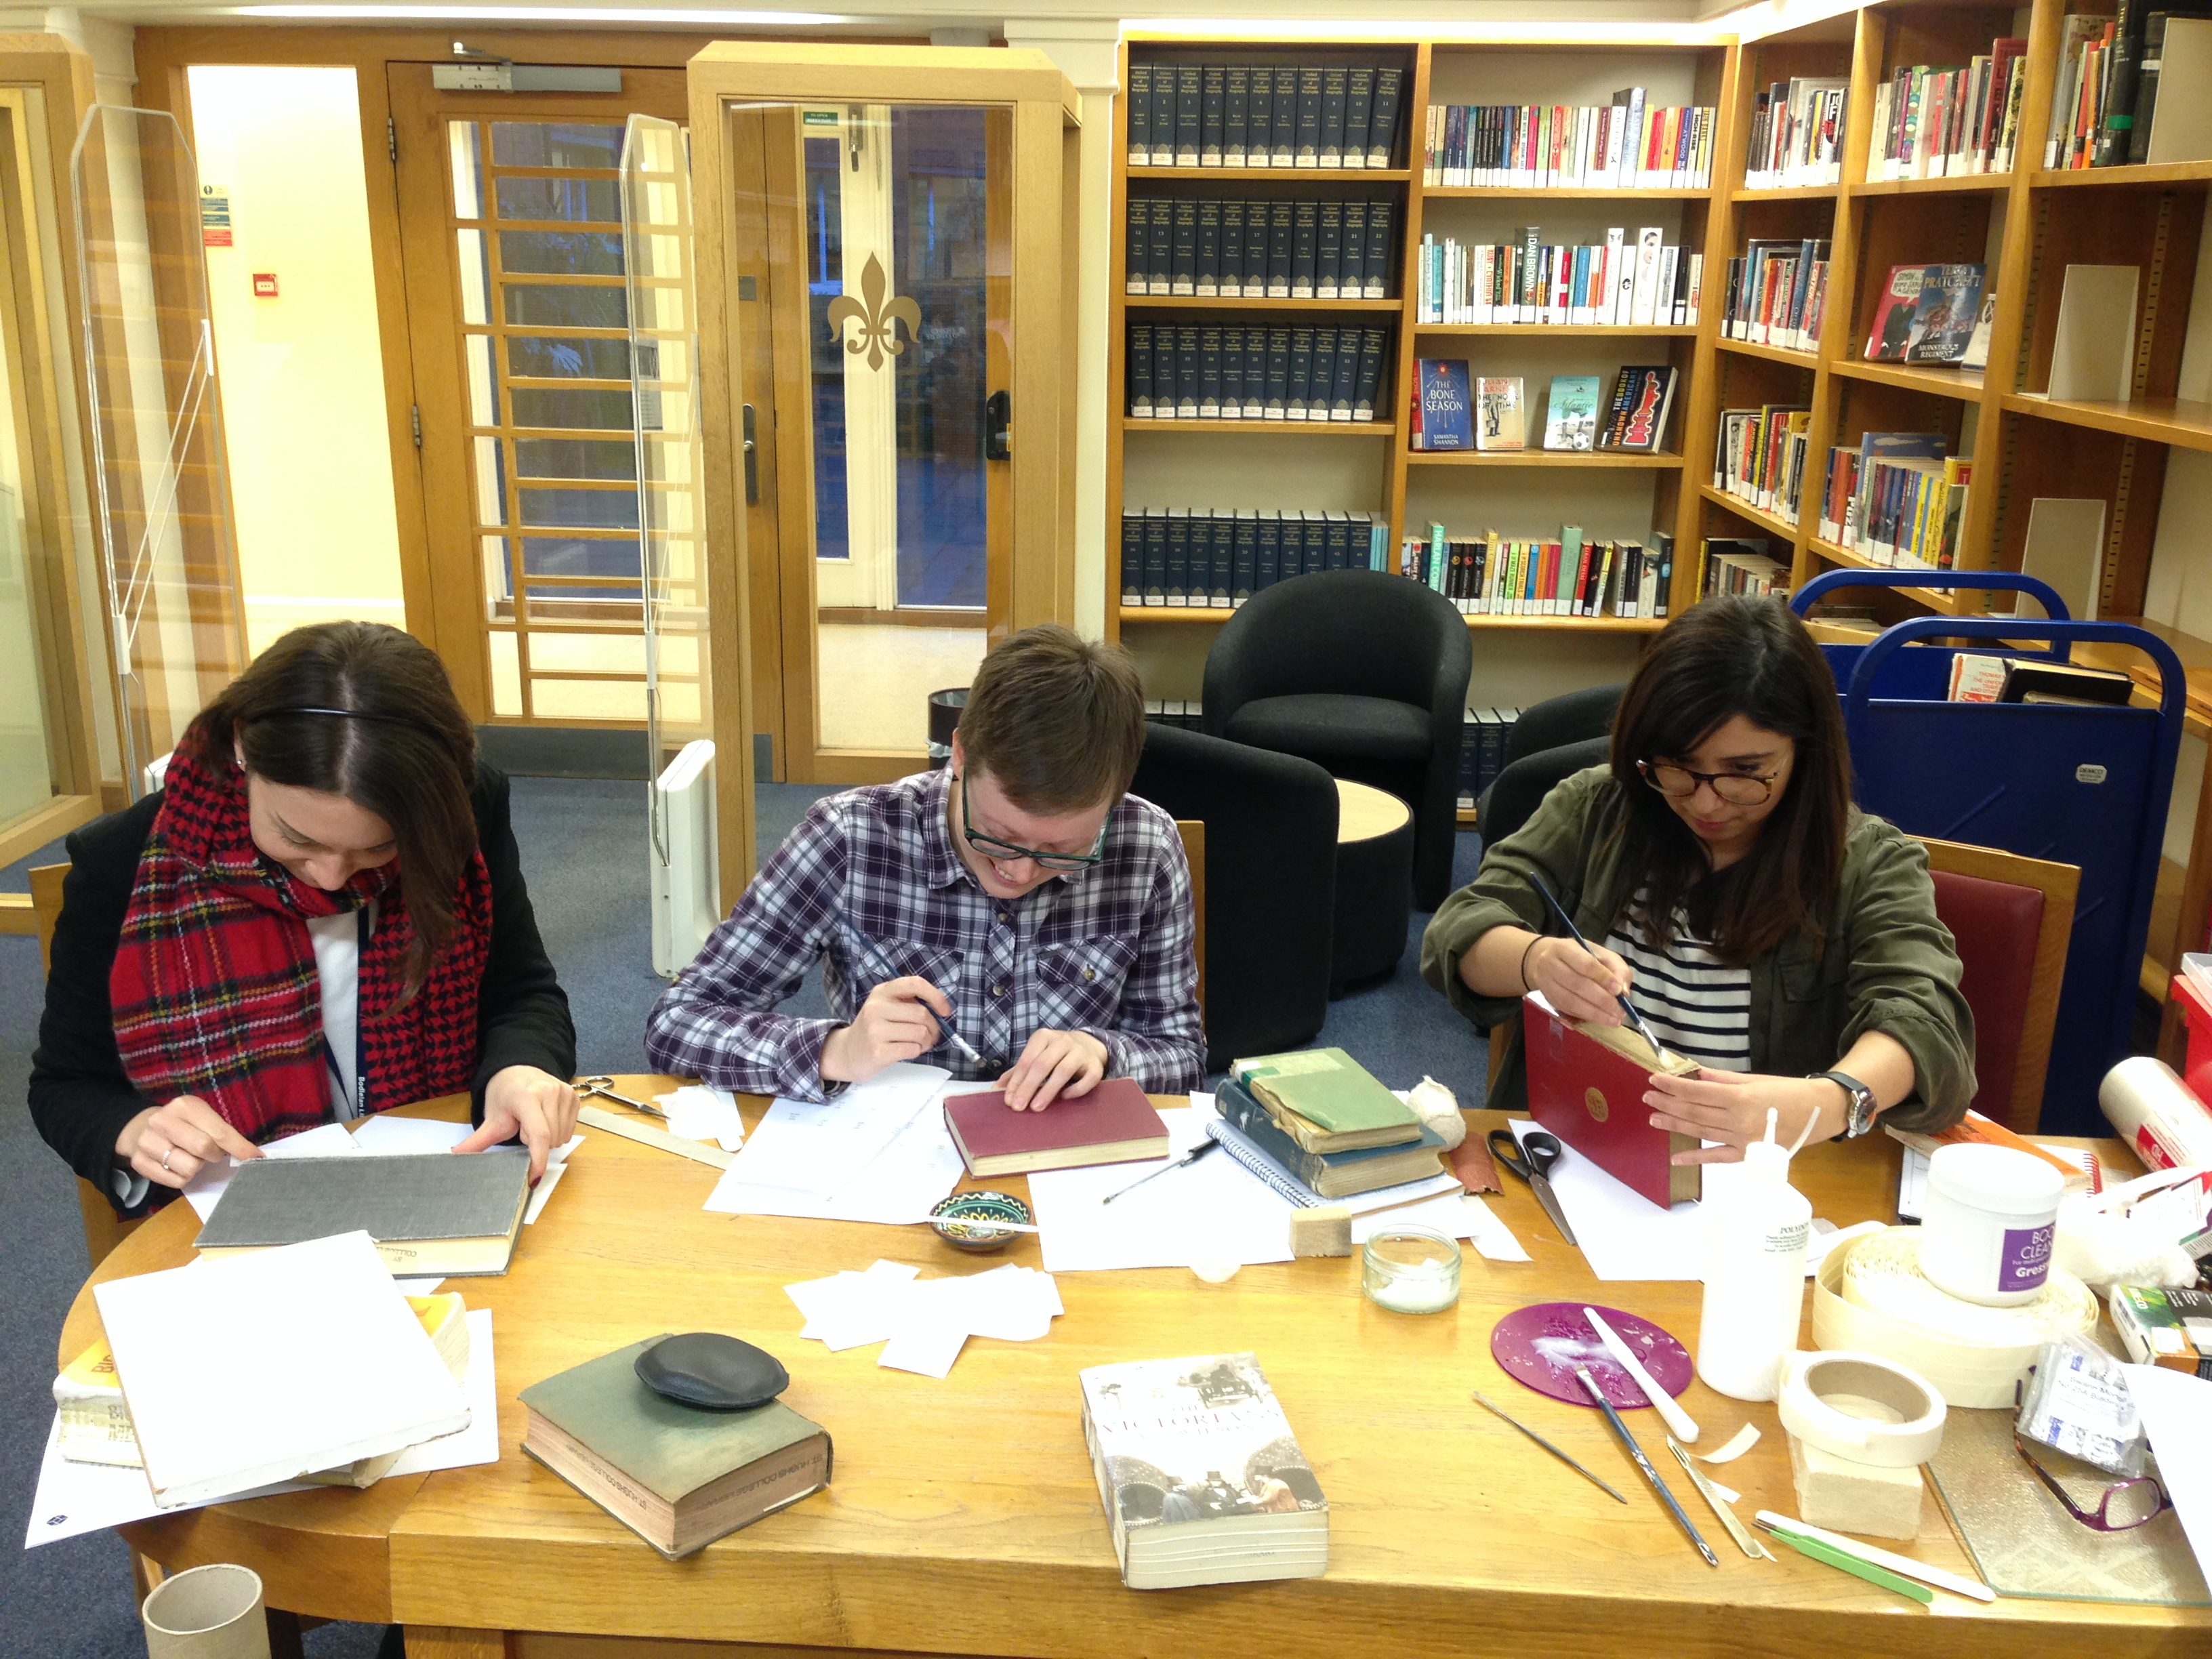 The library team sit at a table repairing books.